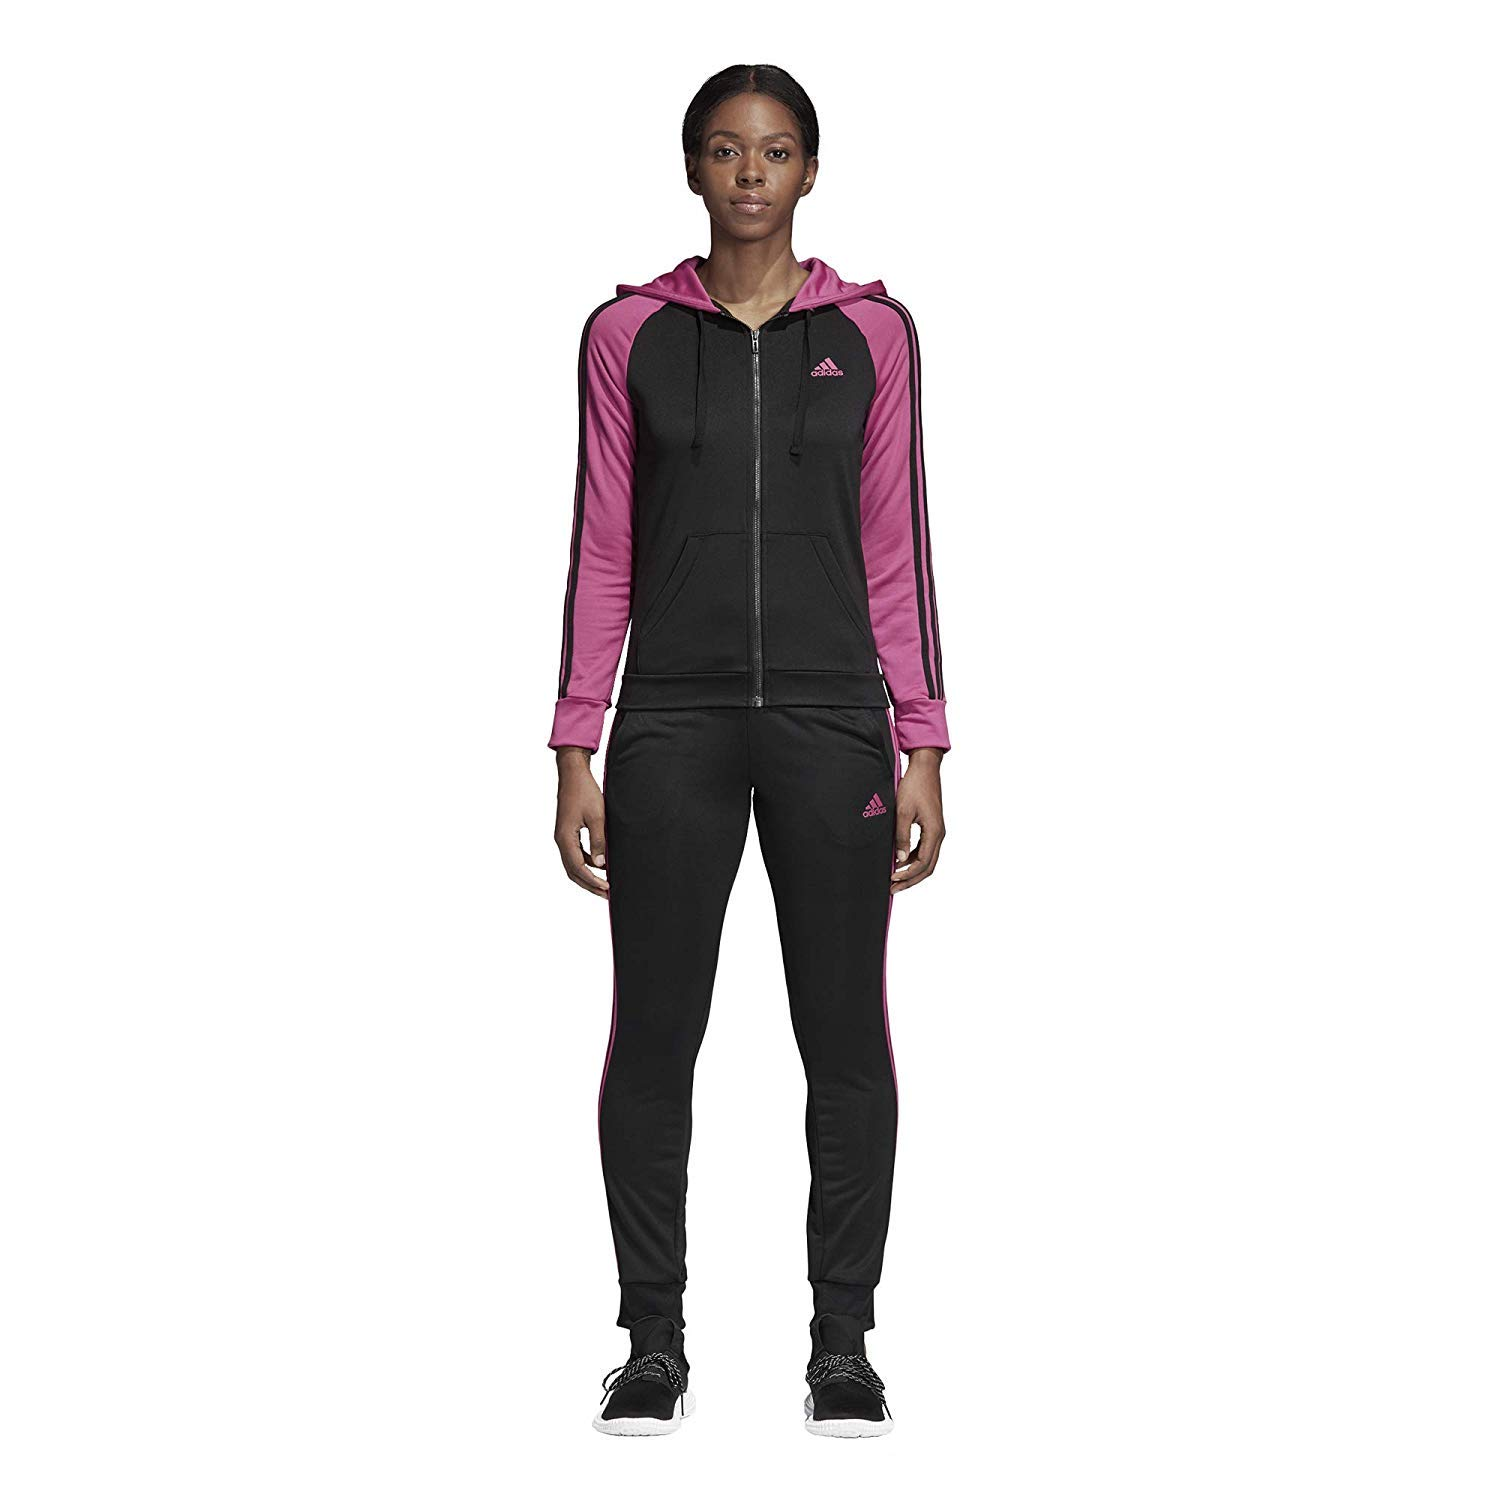 new product c6336 21b3e Adidas Women Track Suit Re-Focus Training 3-Stripes Black Gym Workout  CY3517 (XS)  Amazon.ca  Clothing   Accessories